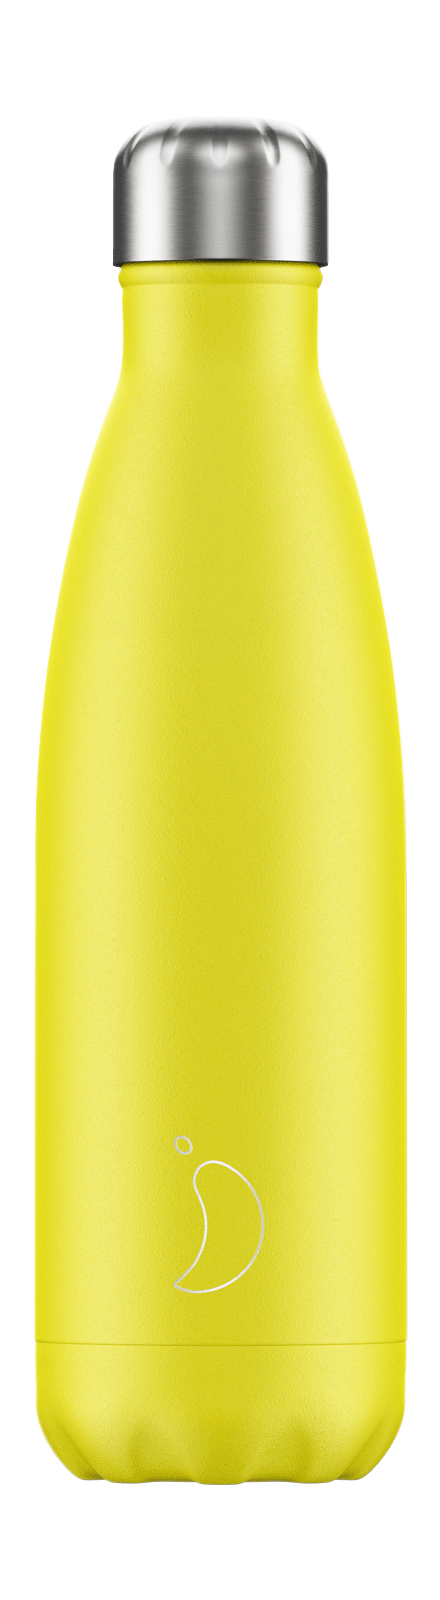 cadeauxwells - 500ml Chilly's Bottle - Neon Yellow - Chilly's Bottles - Homewares